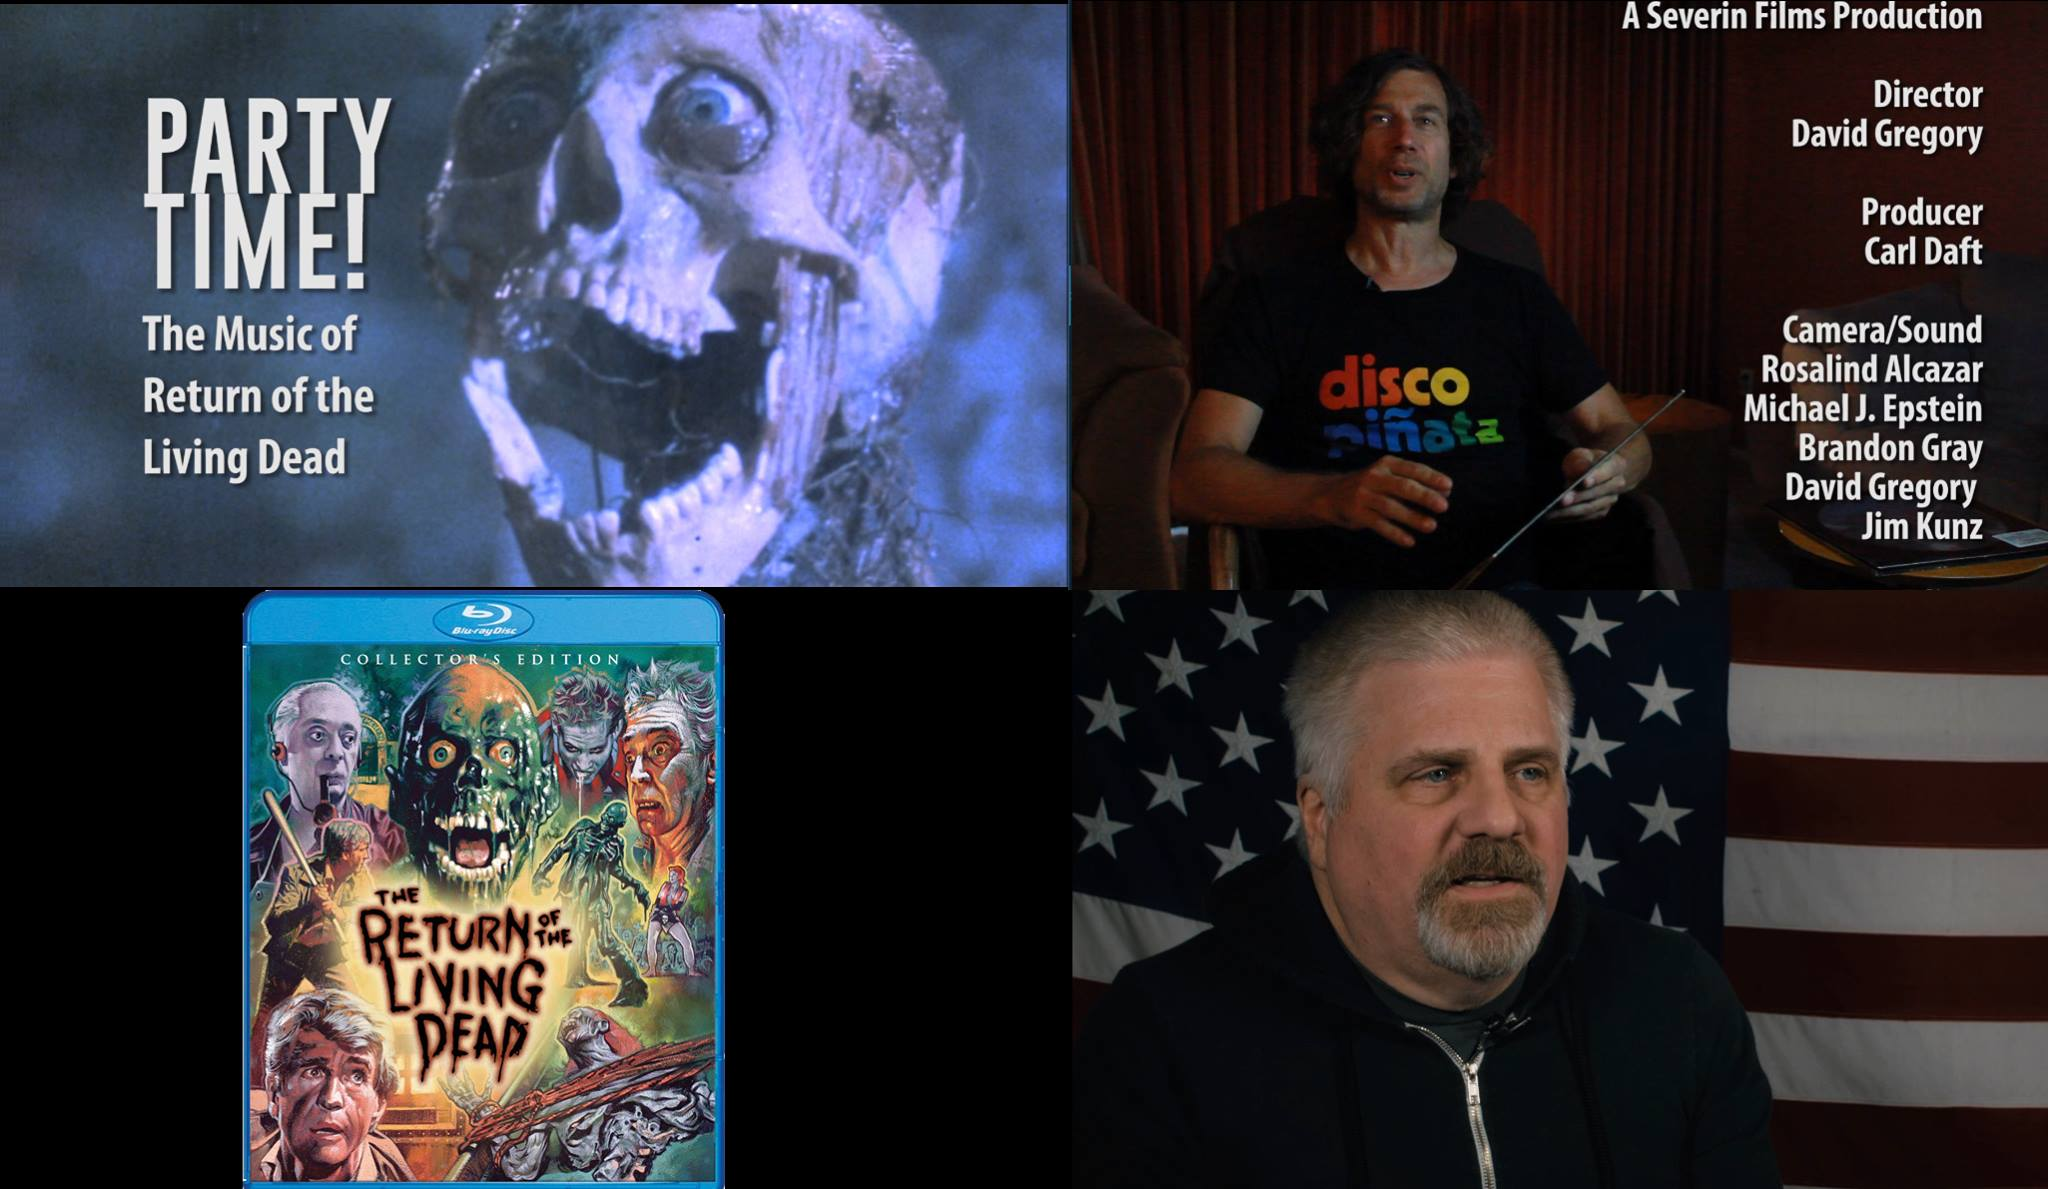 Sophia and Michael interview John Sox for The Return of the Living Dead blu ray bonus featurette